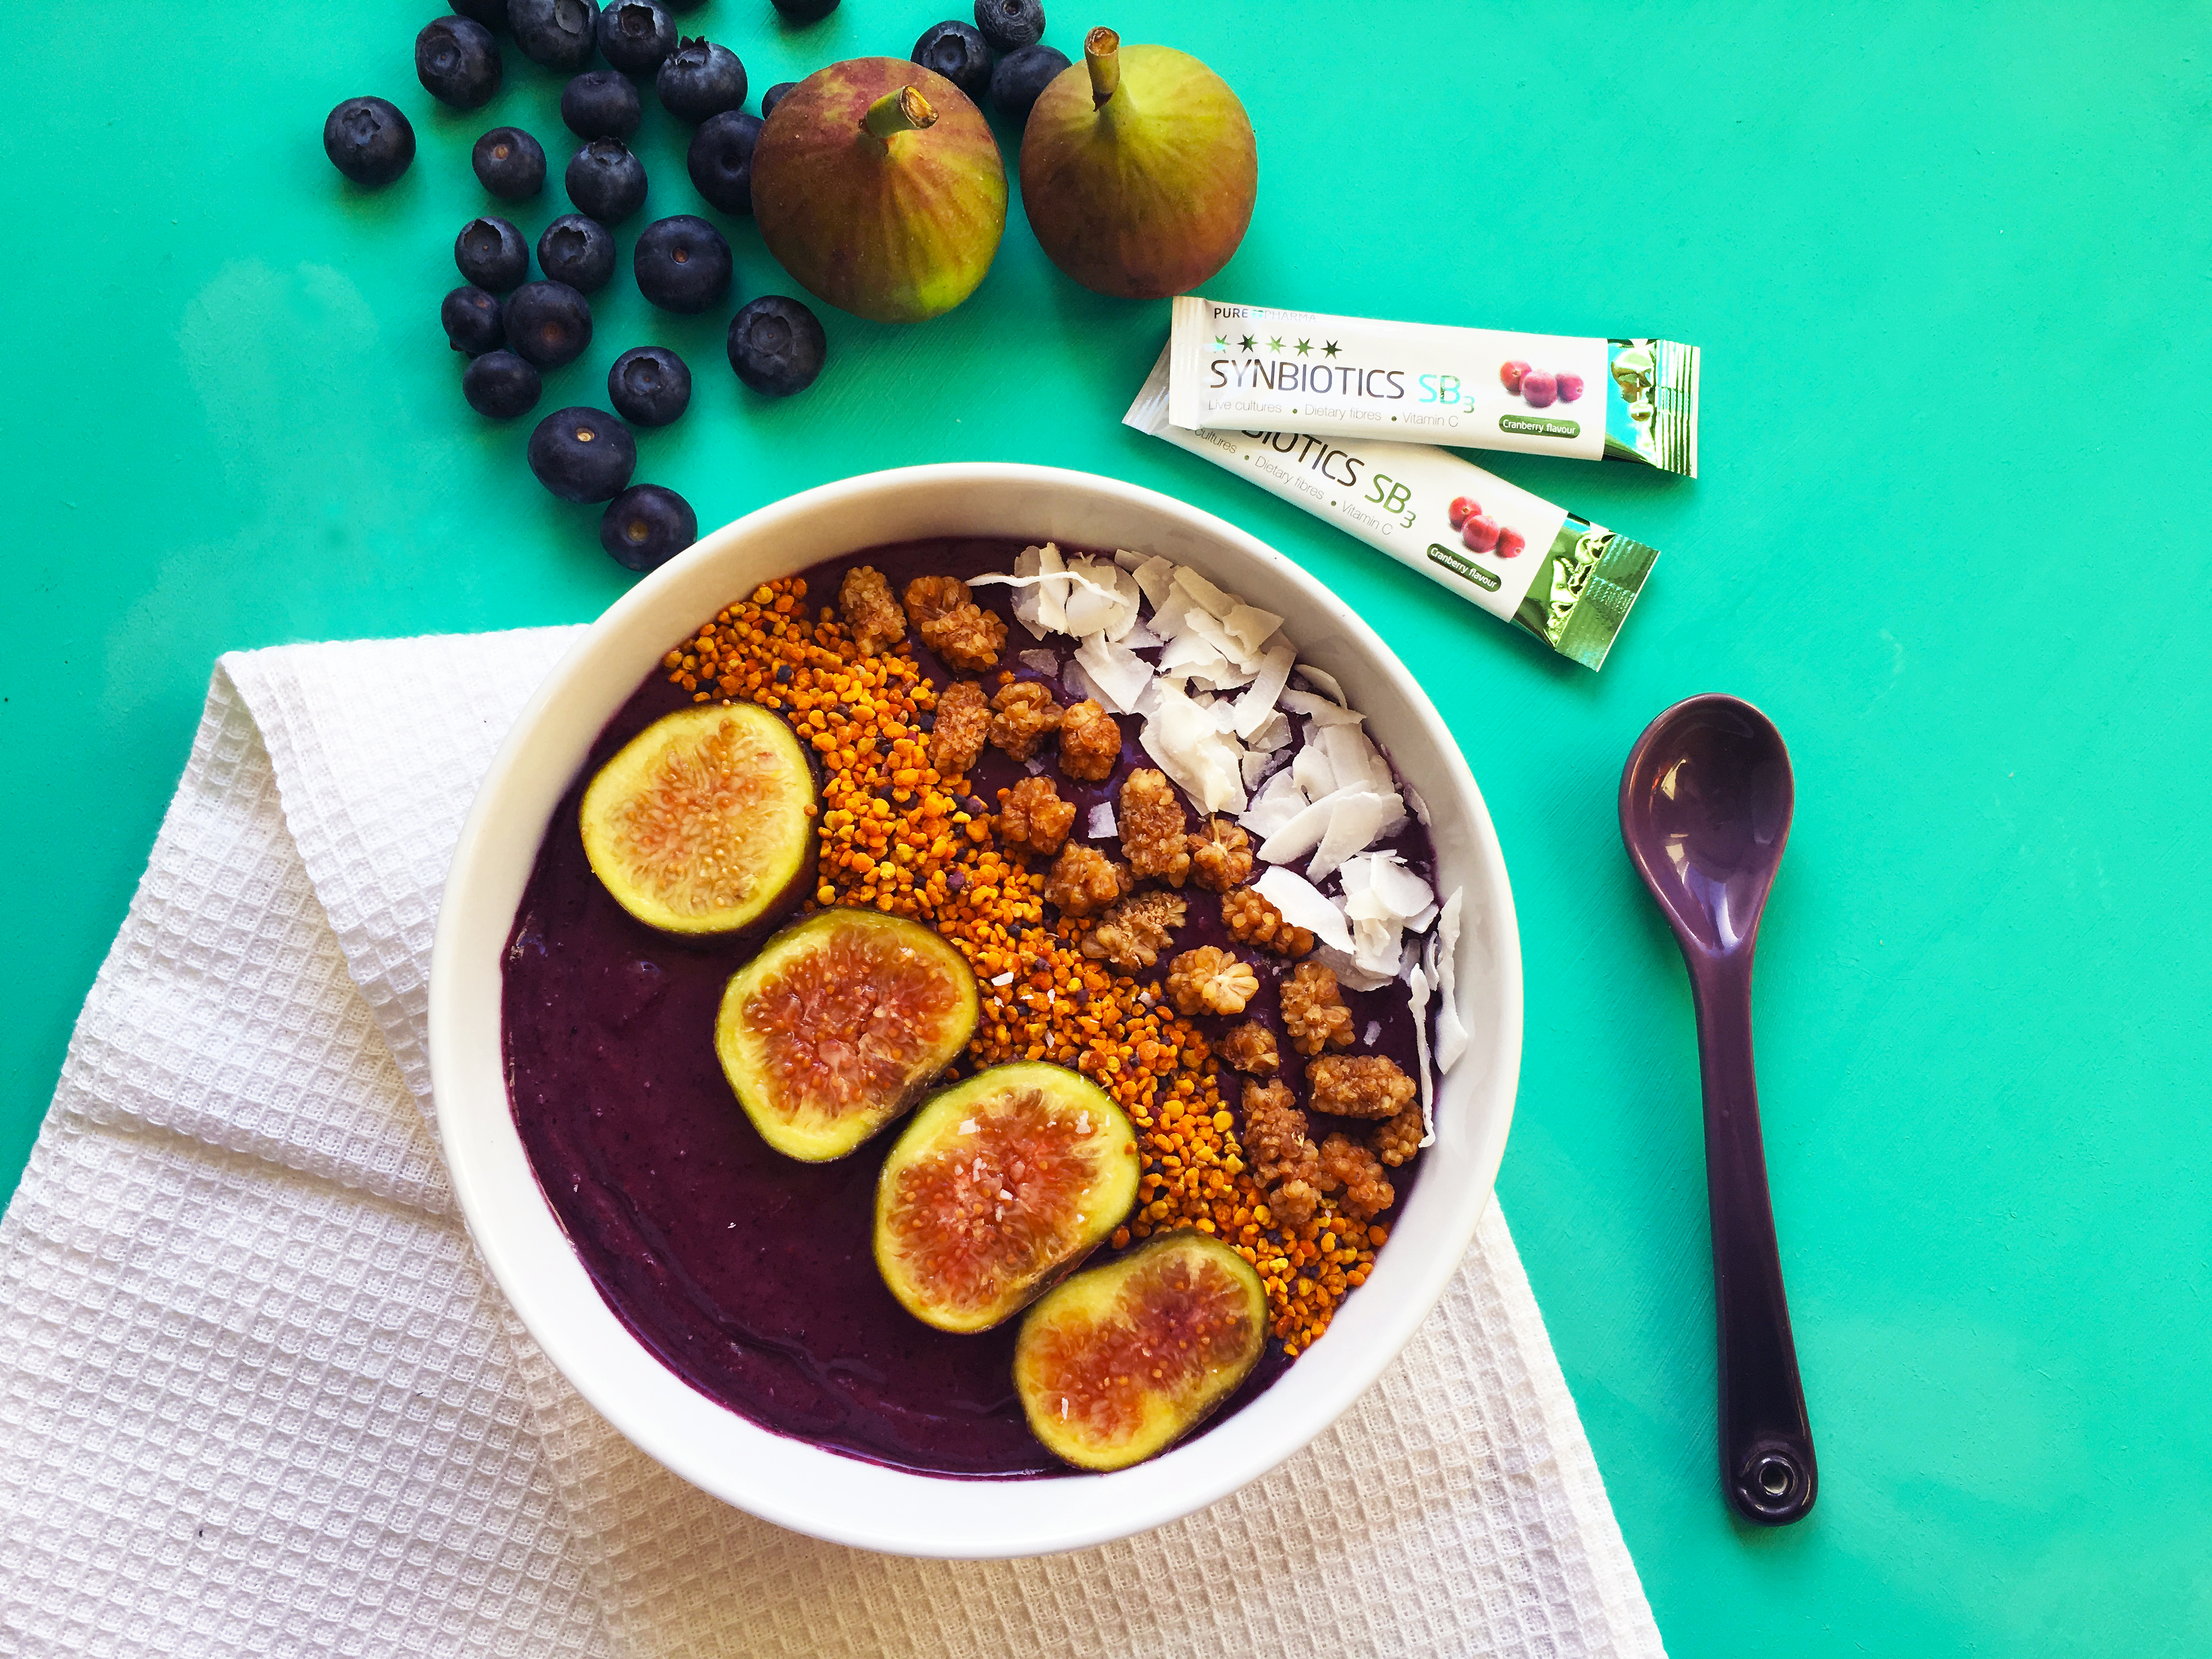 Blueberry and Acai Probiotic Smoothie Bowl